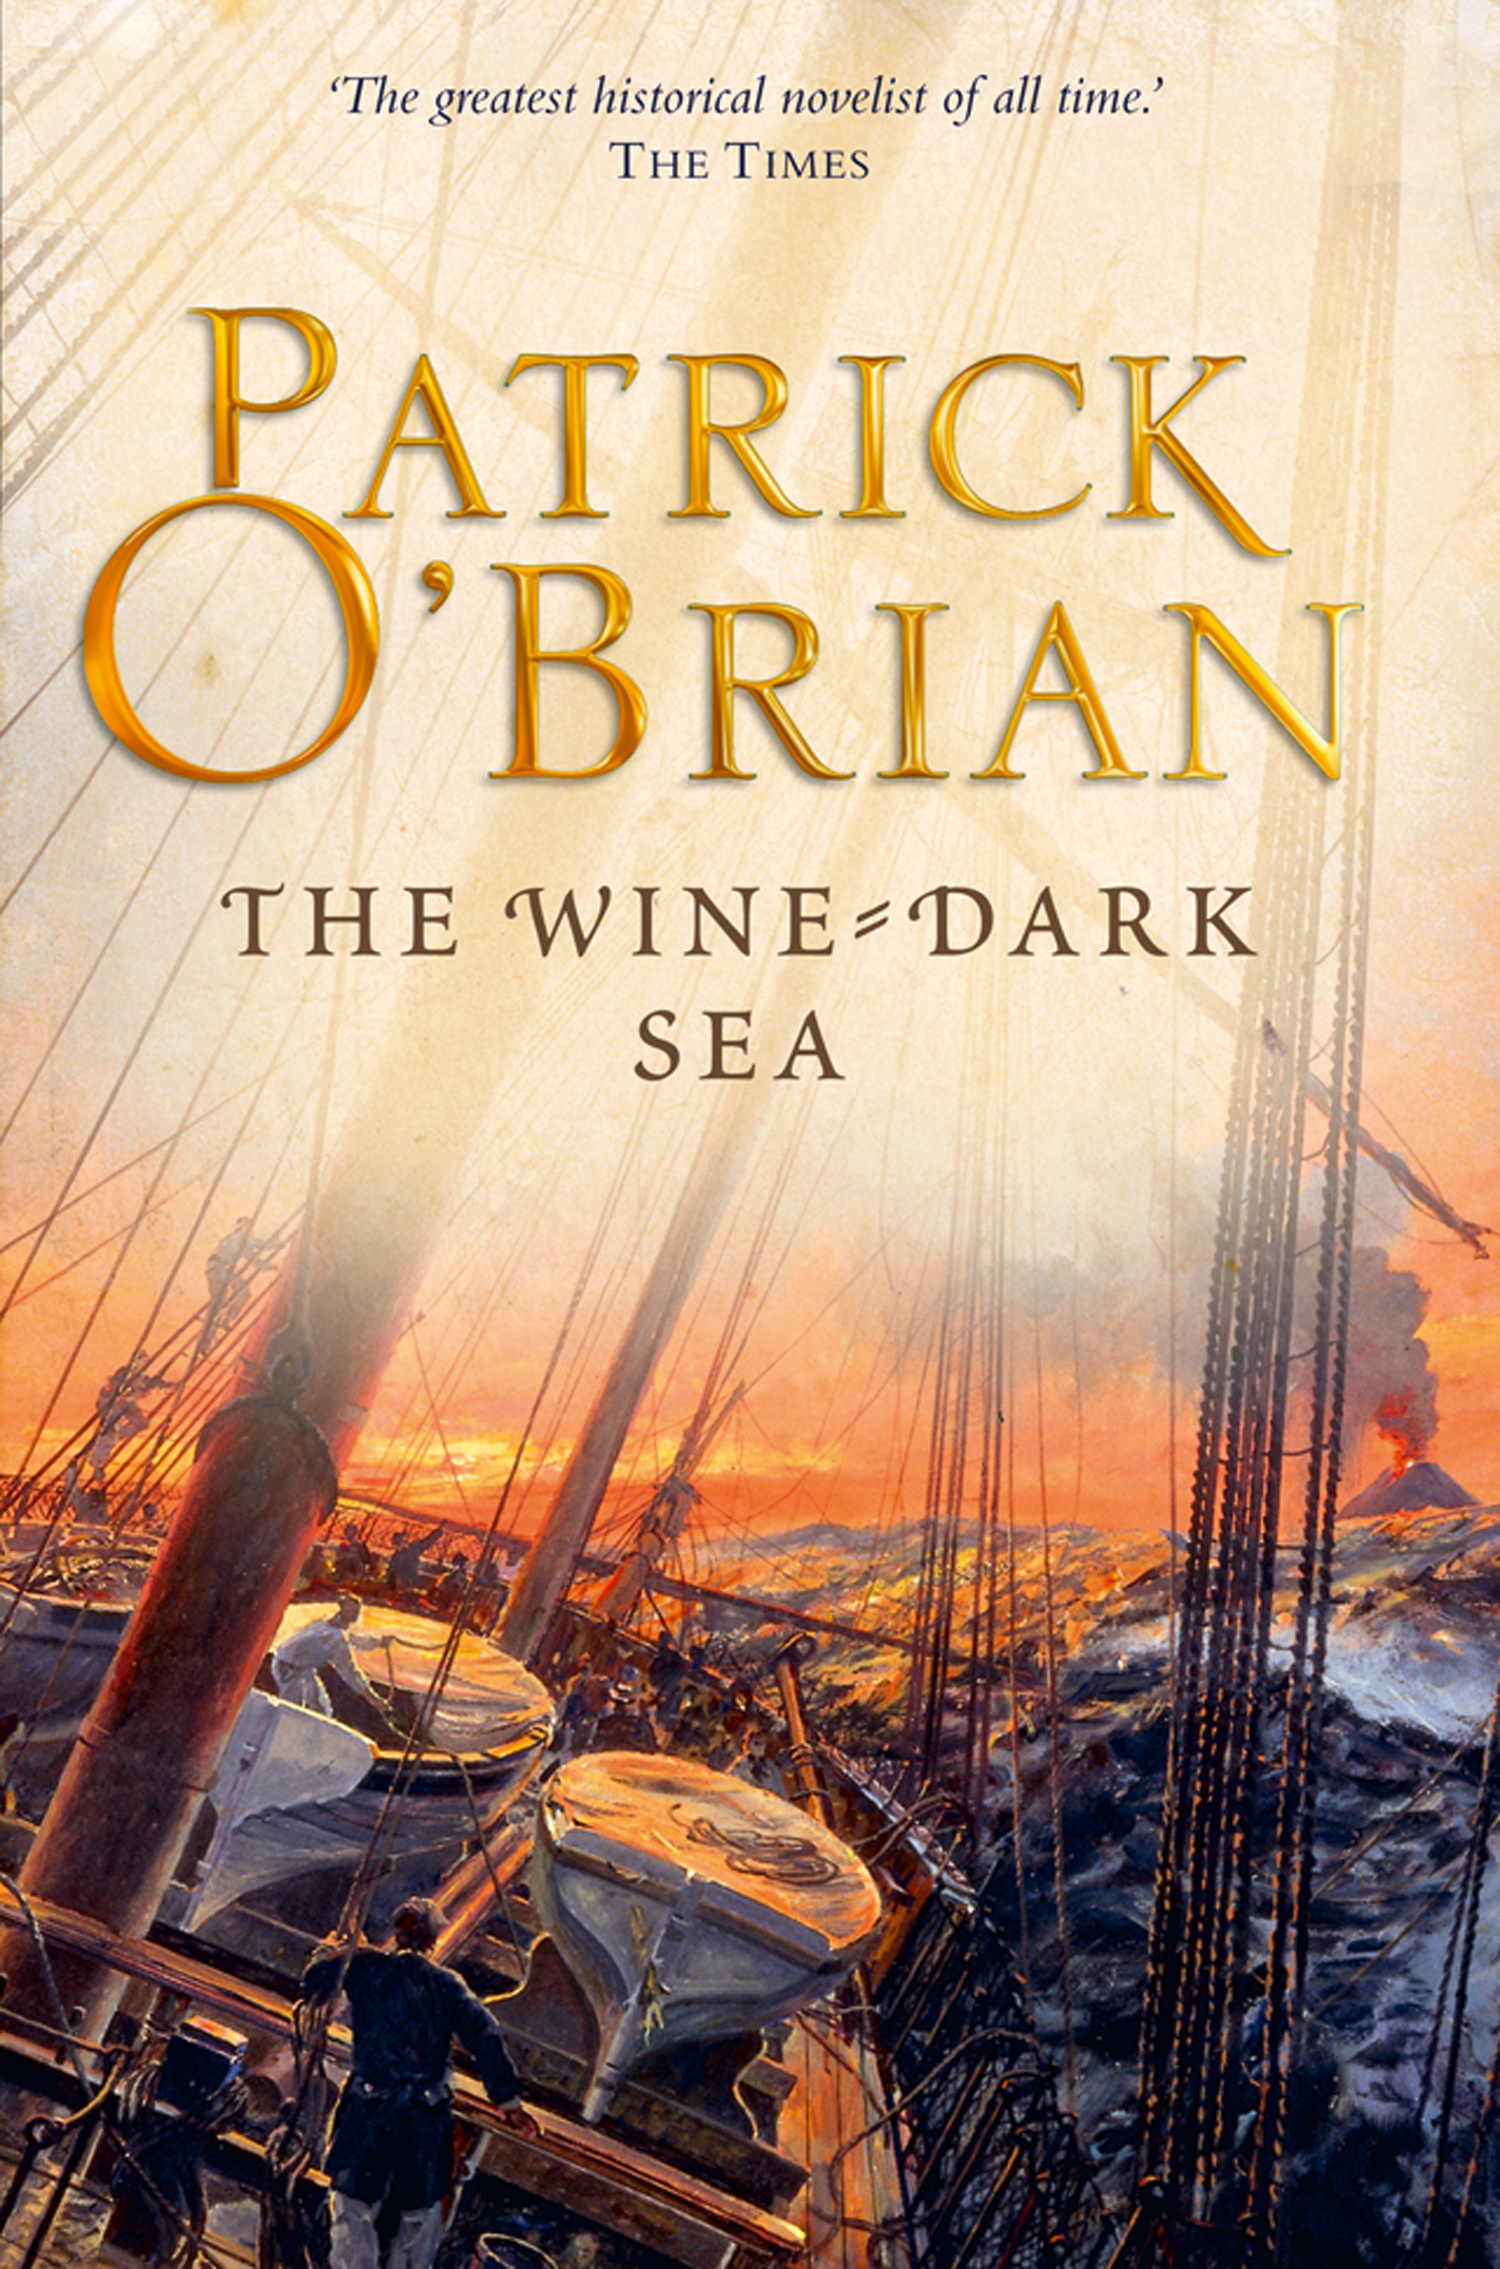 The Wine-Dark Sea: Aubrey/Maturin series, book 16